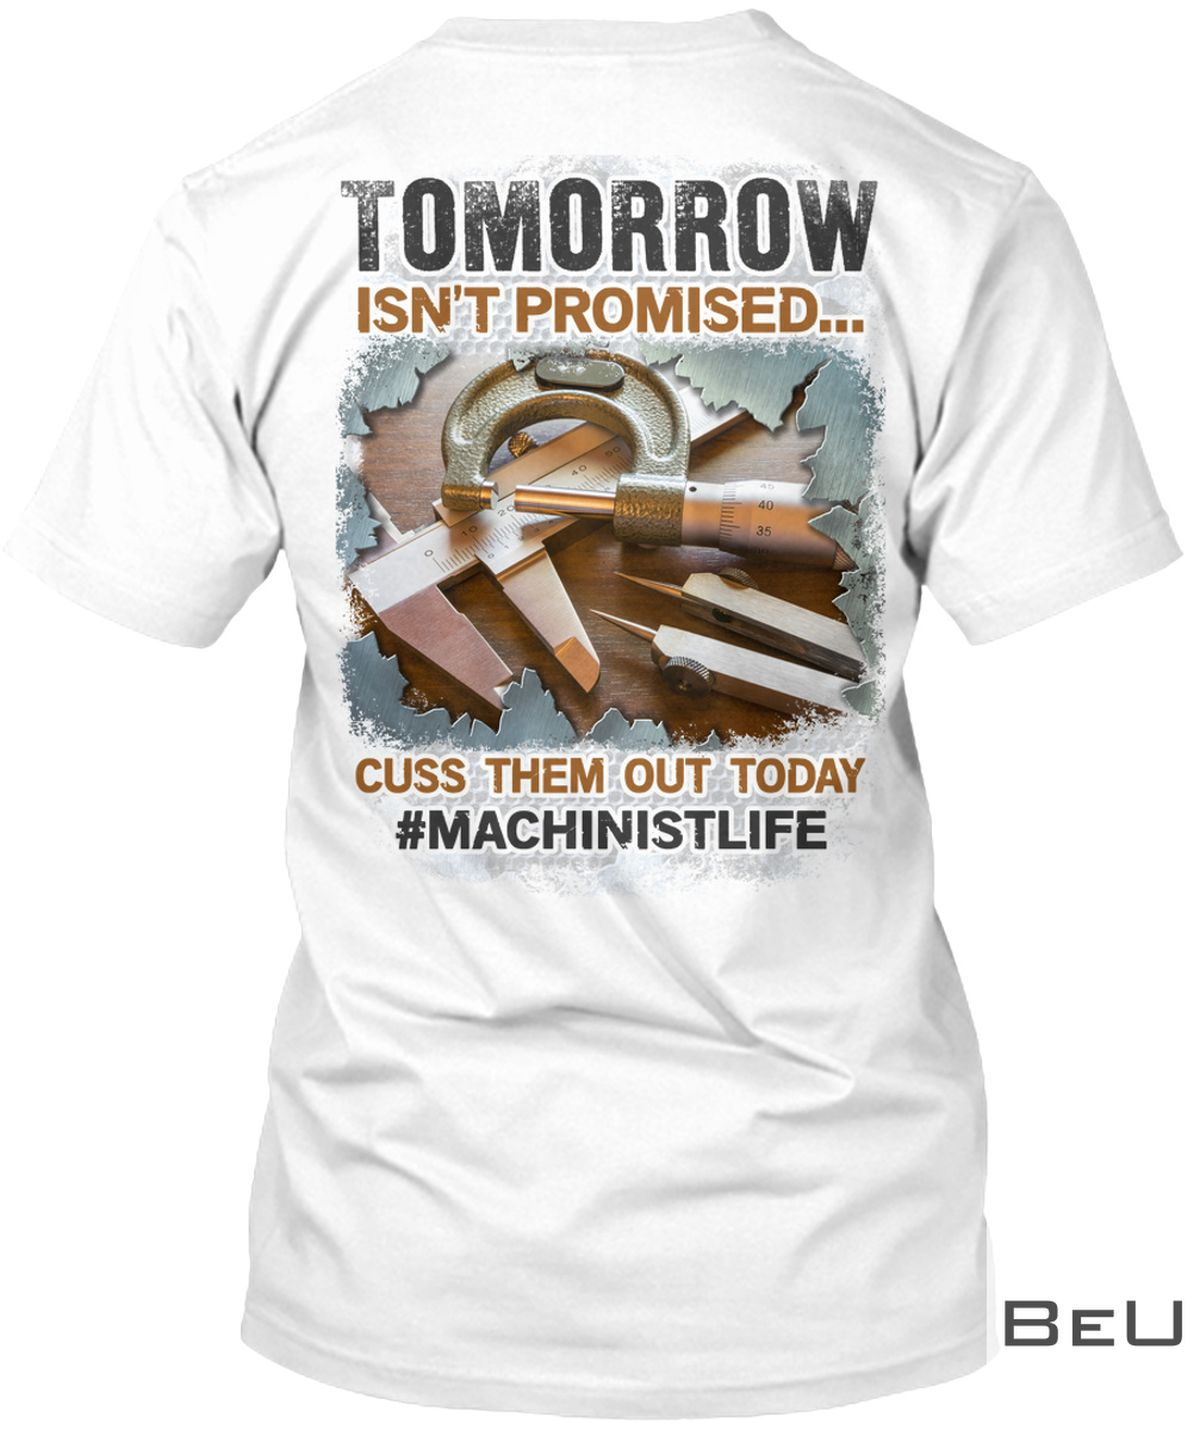 Tomorrow Isn't Promised Cuss Them Out Today Machinistlife Shirt